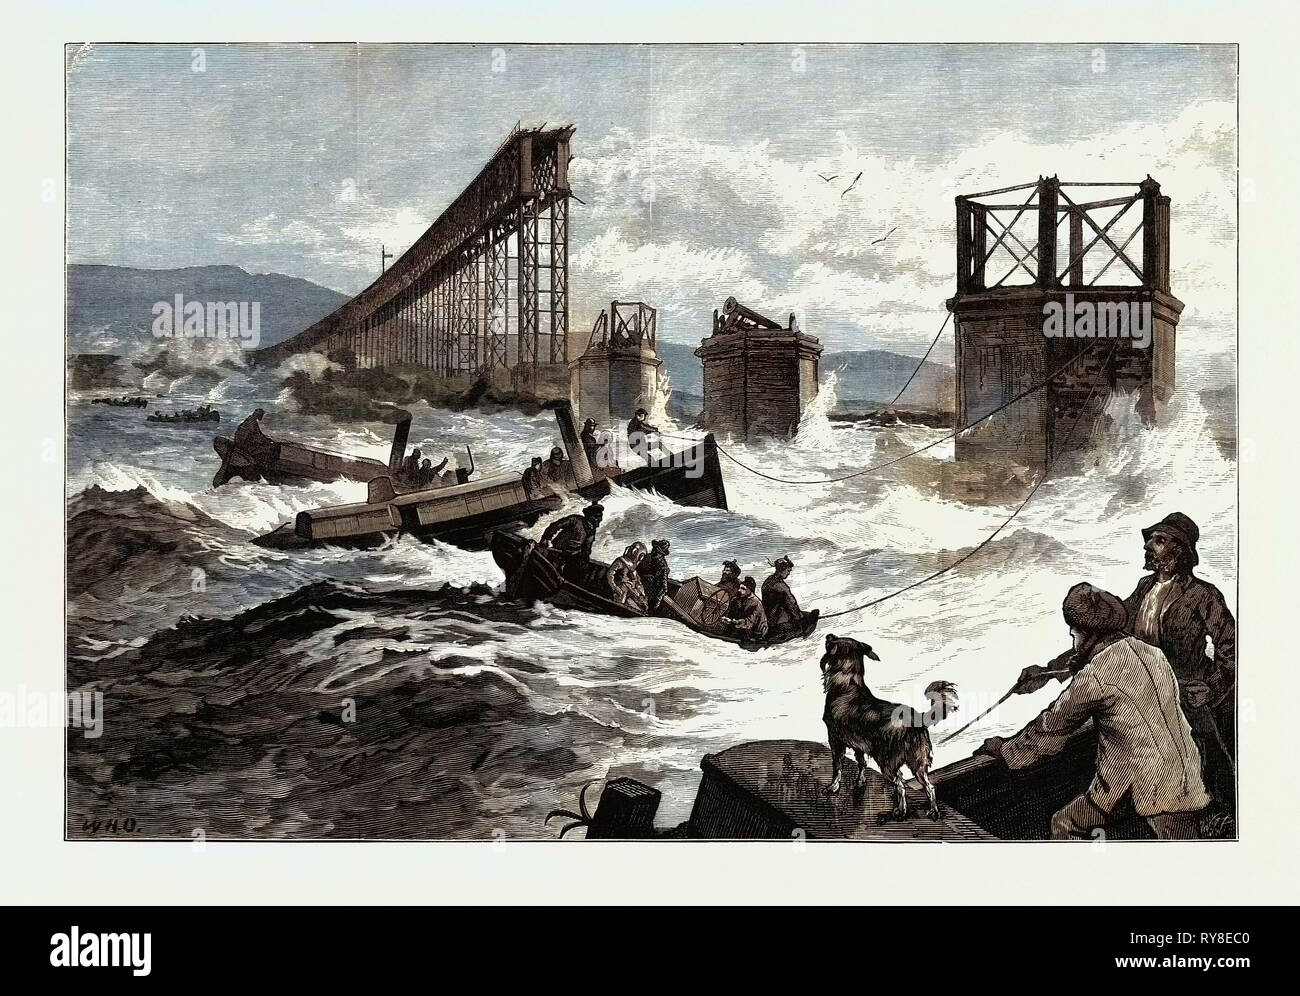 The Tay Bridge Disaster: Steam Launches and Divers' Barge Employed in Search 1880 - Stock Image